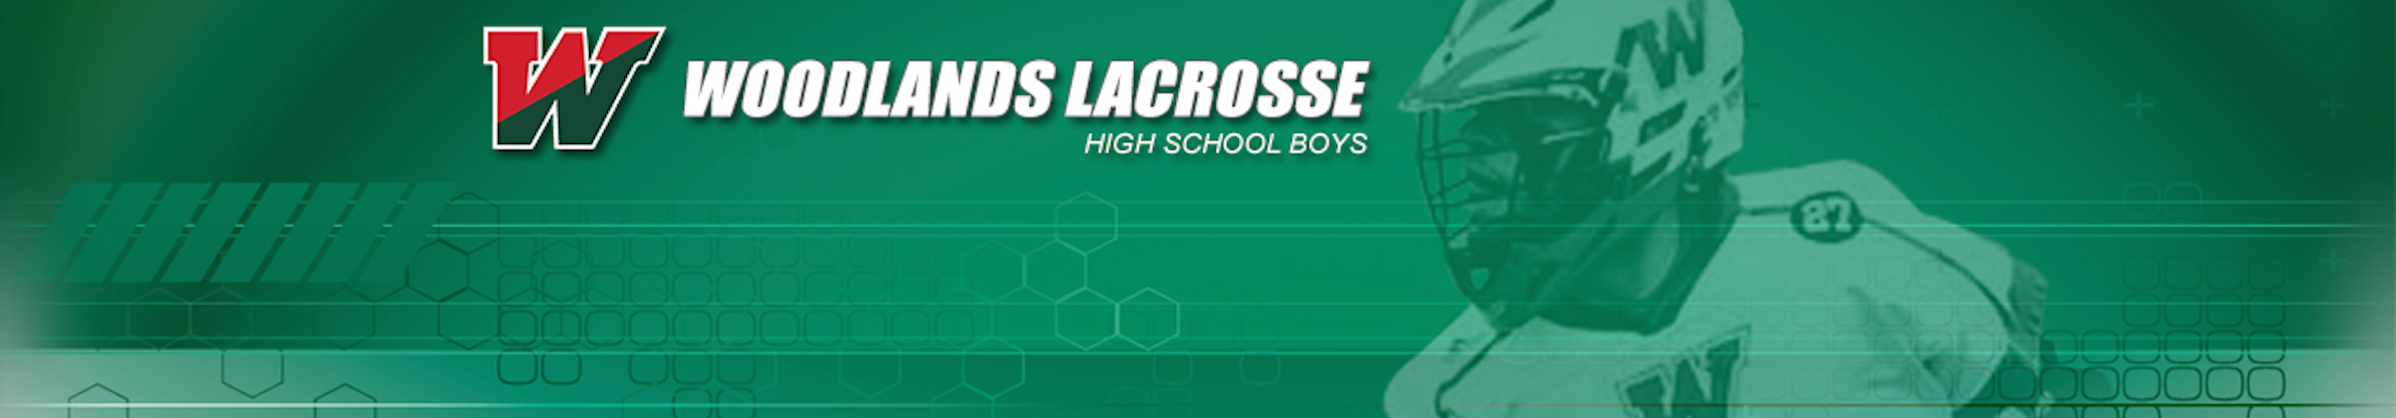 The Woodlands Lacrosse High School Boys, Lacrosse, Goal, Field